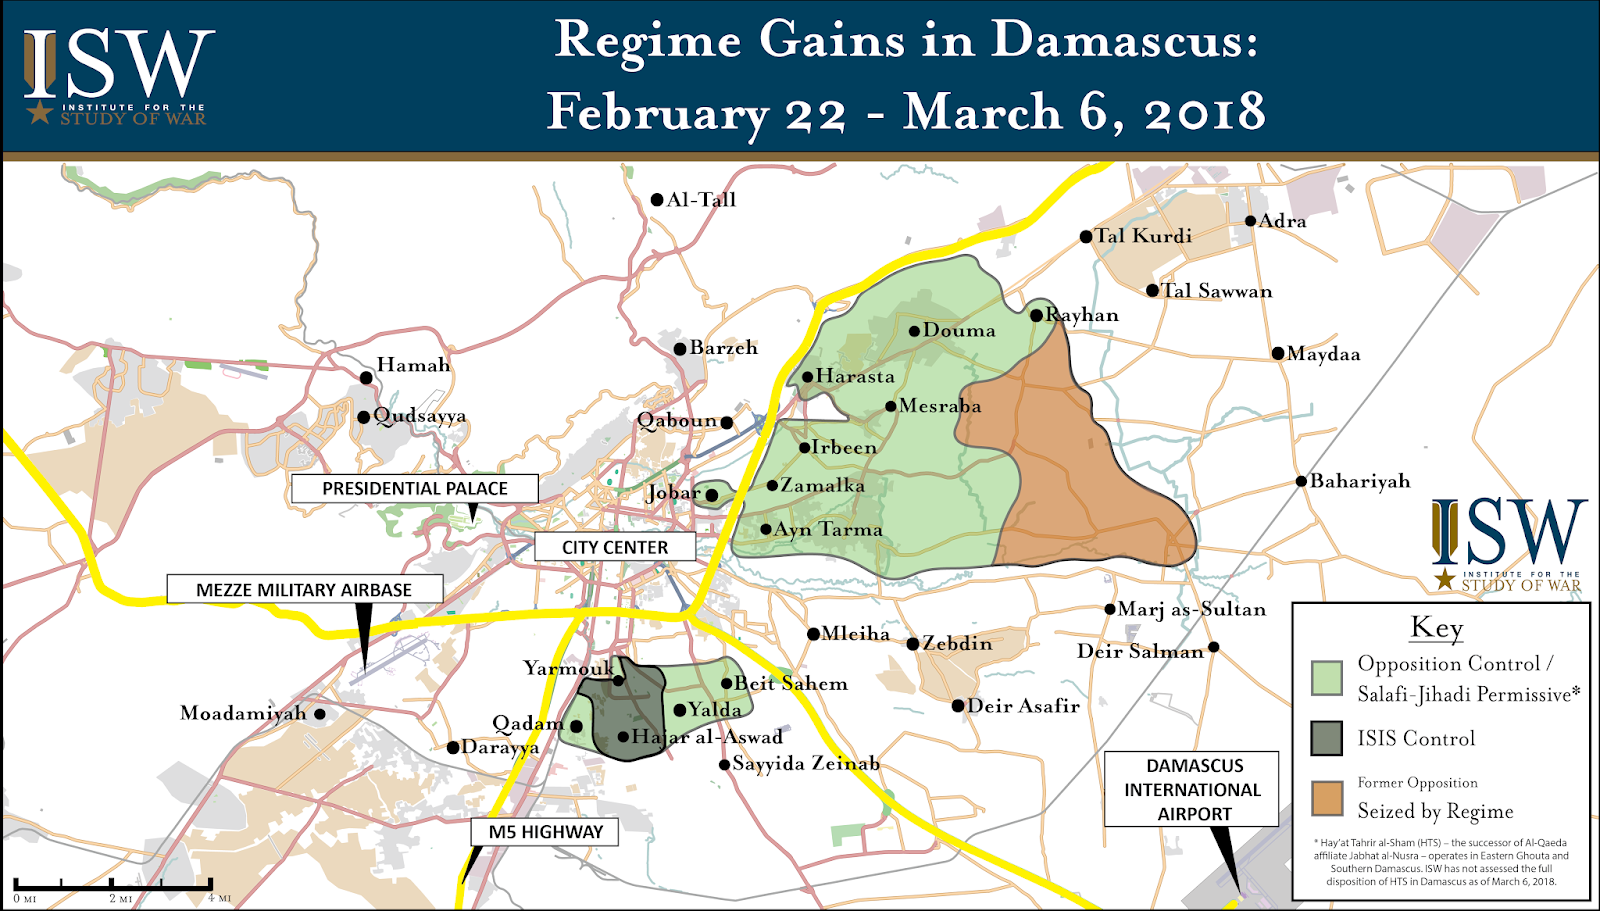 ISW Blog: Regime Gains in Damascus, Syria: February 22 - March 6, 2018